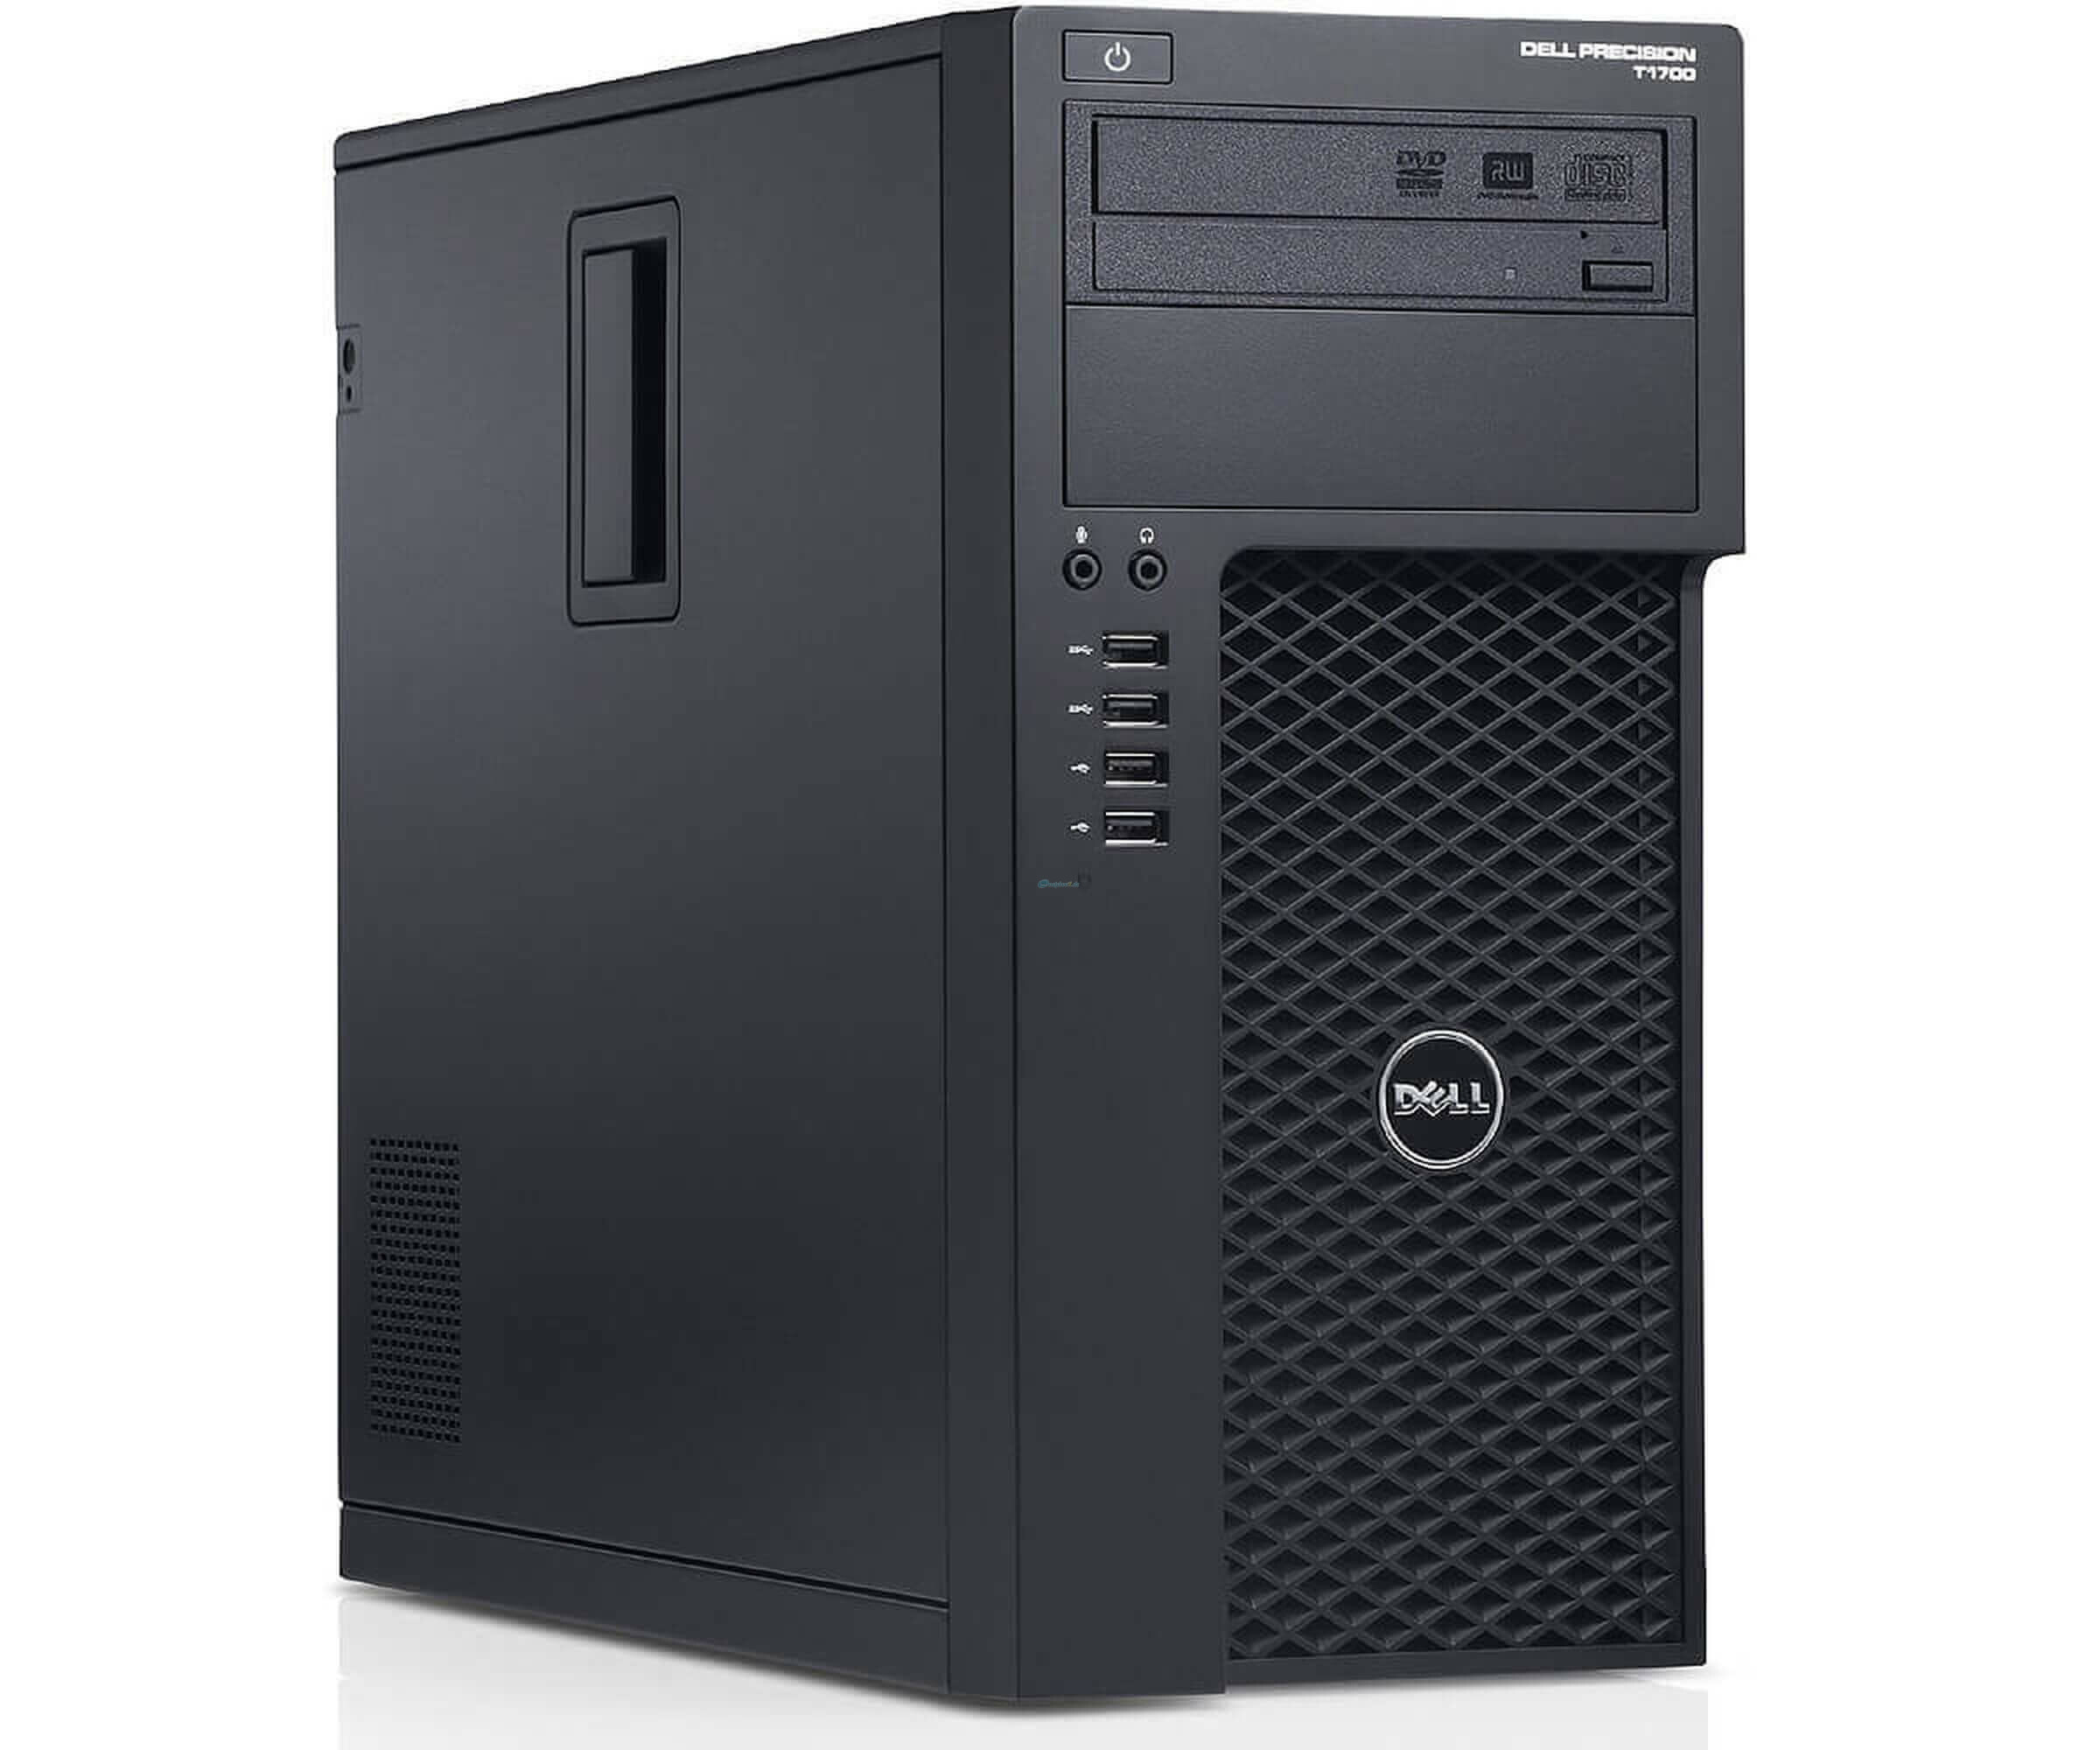 PC Systeme, Computer - Dell Precision T1700 MT Core i7 4770 3.40 GHz RAM 4 GB 500 GB W7P  - Onlineshop Noteboox.de